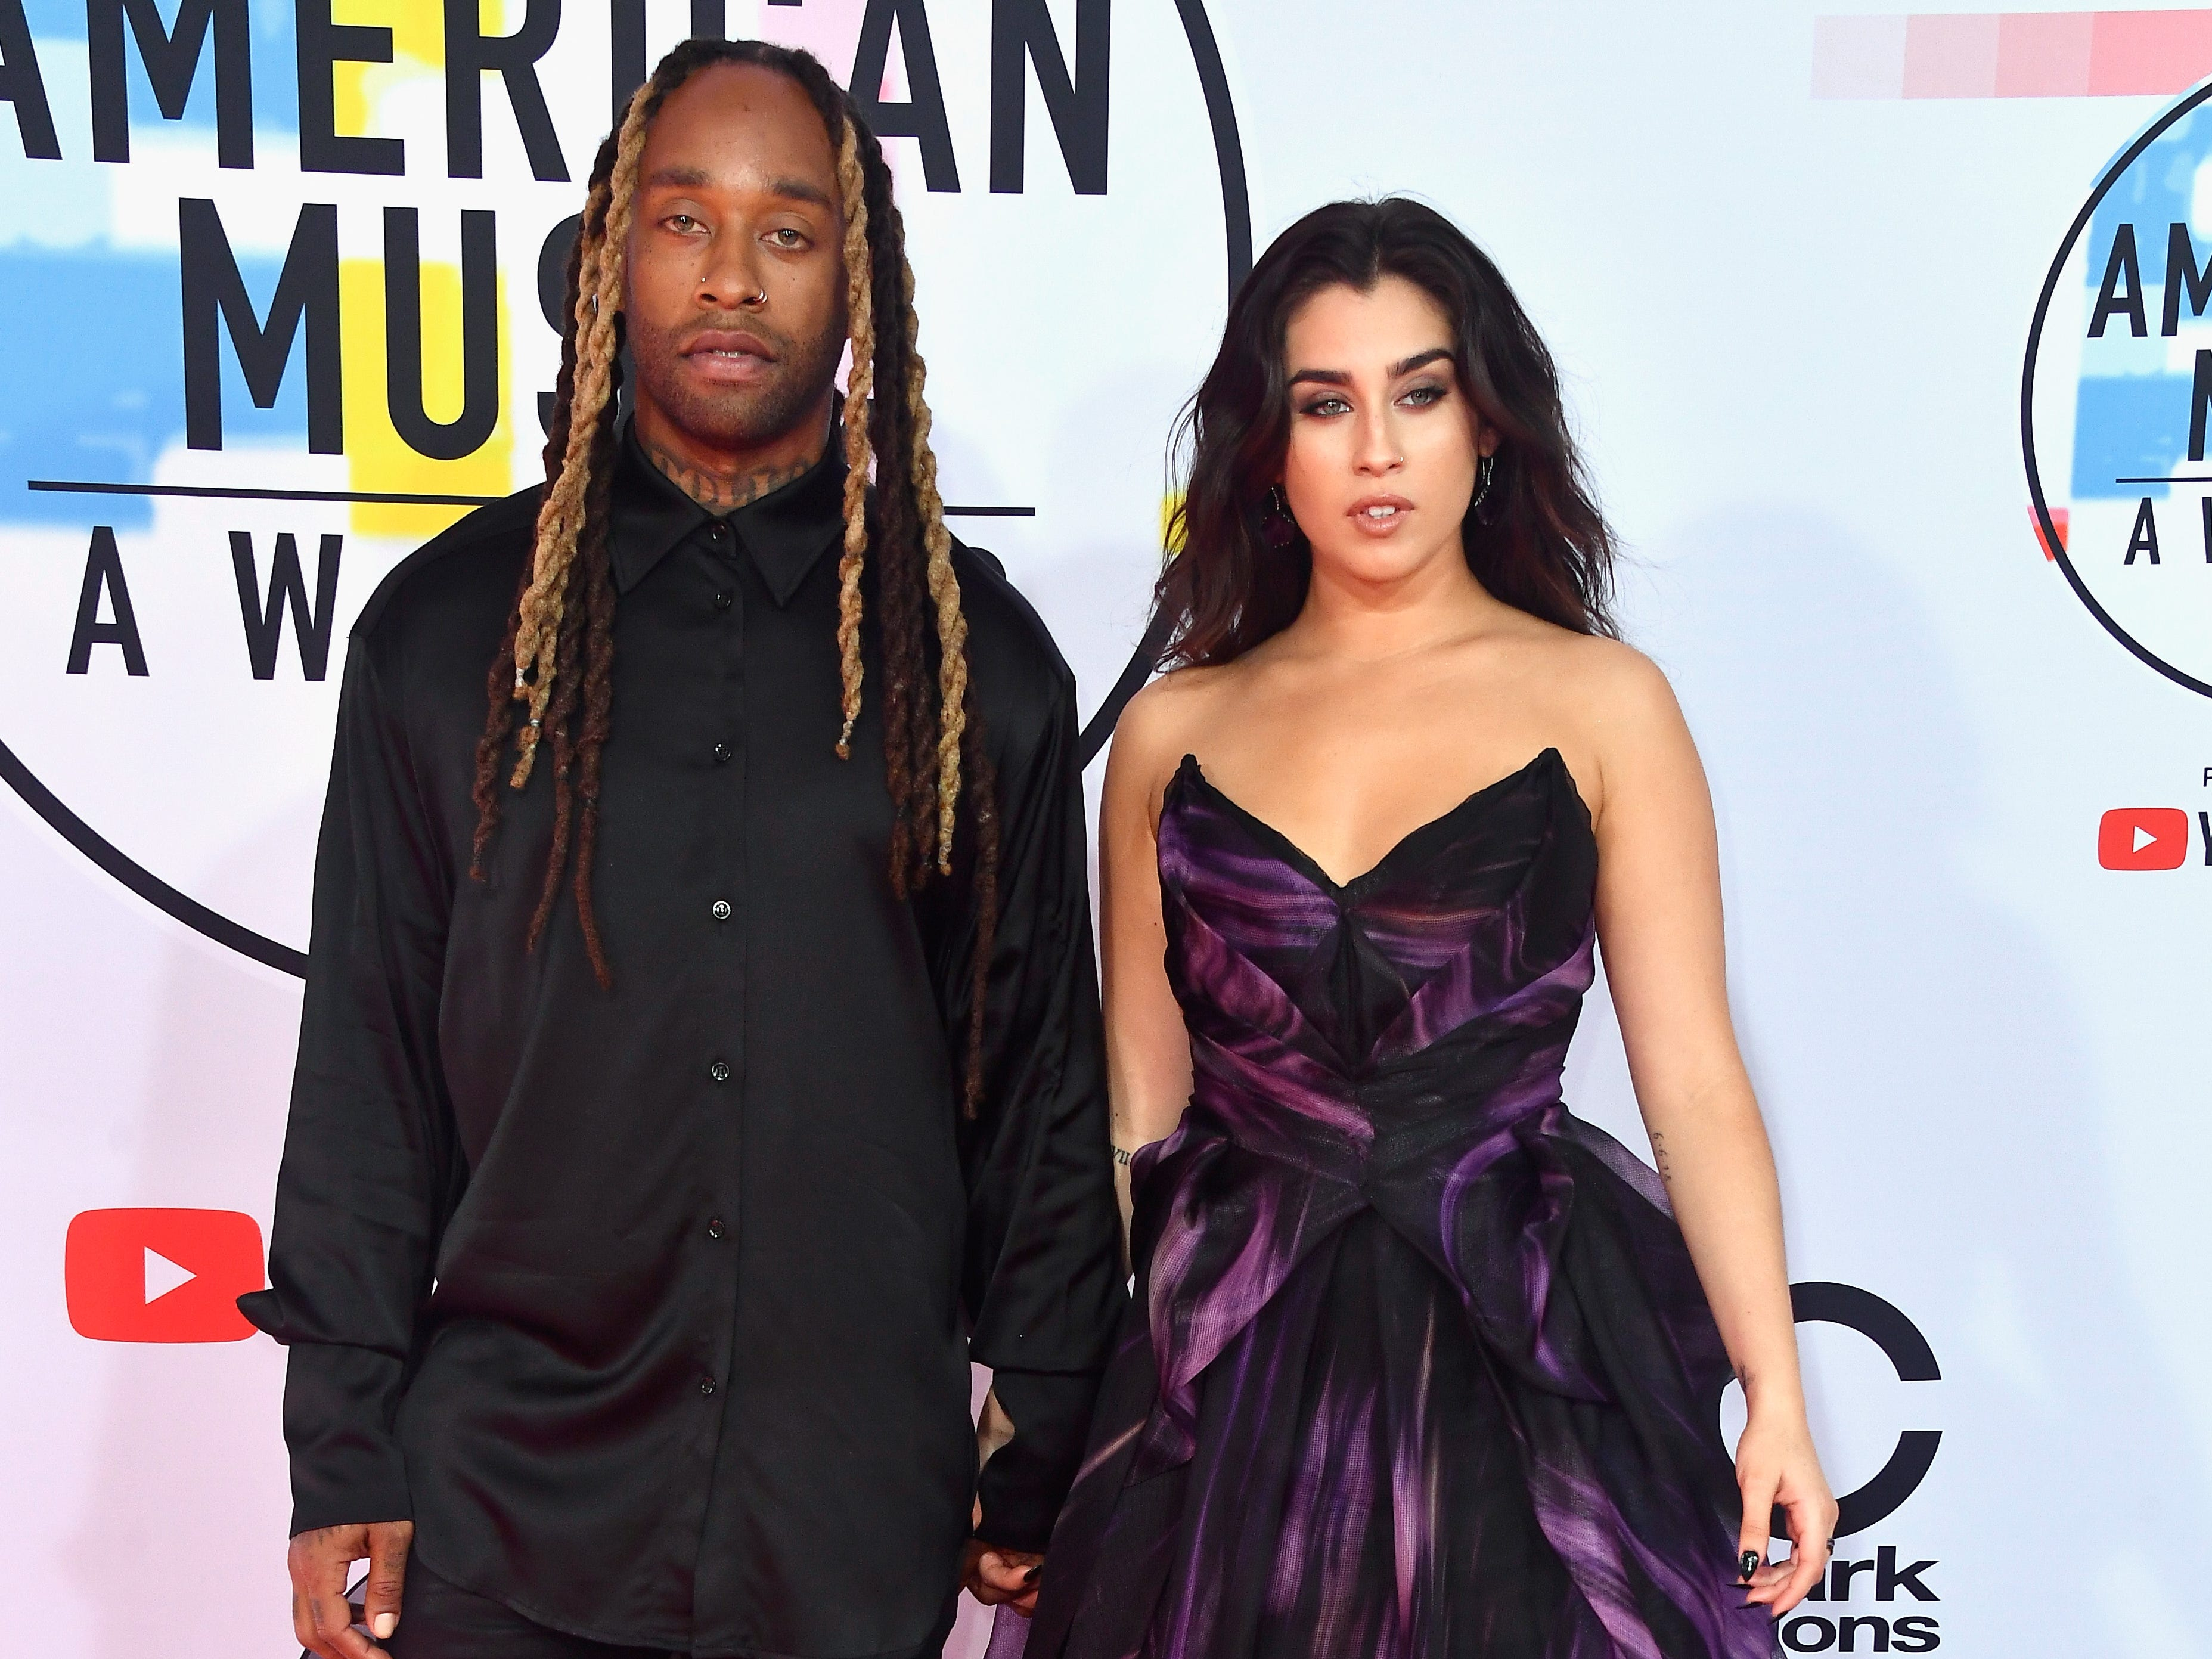 Ty Dolla Sign and Lauren Jauregui